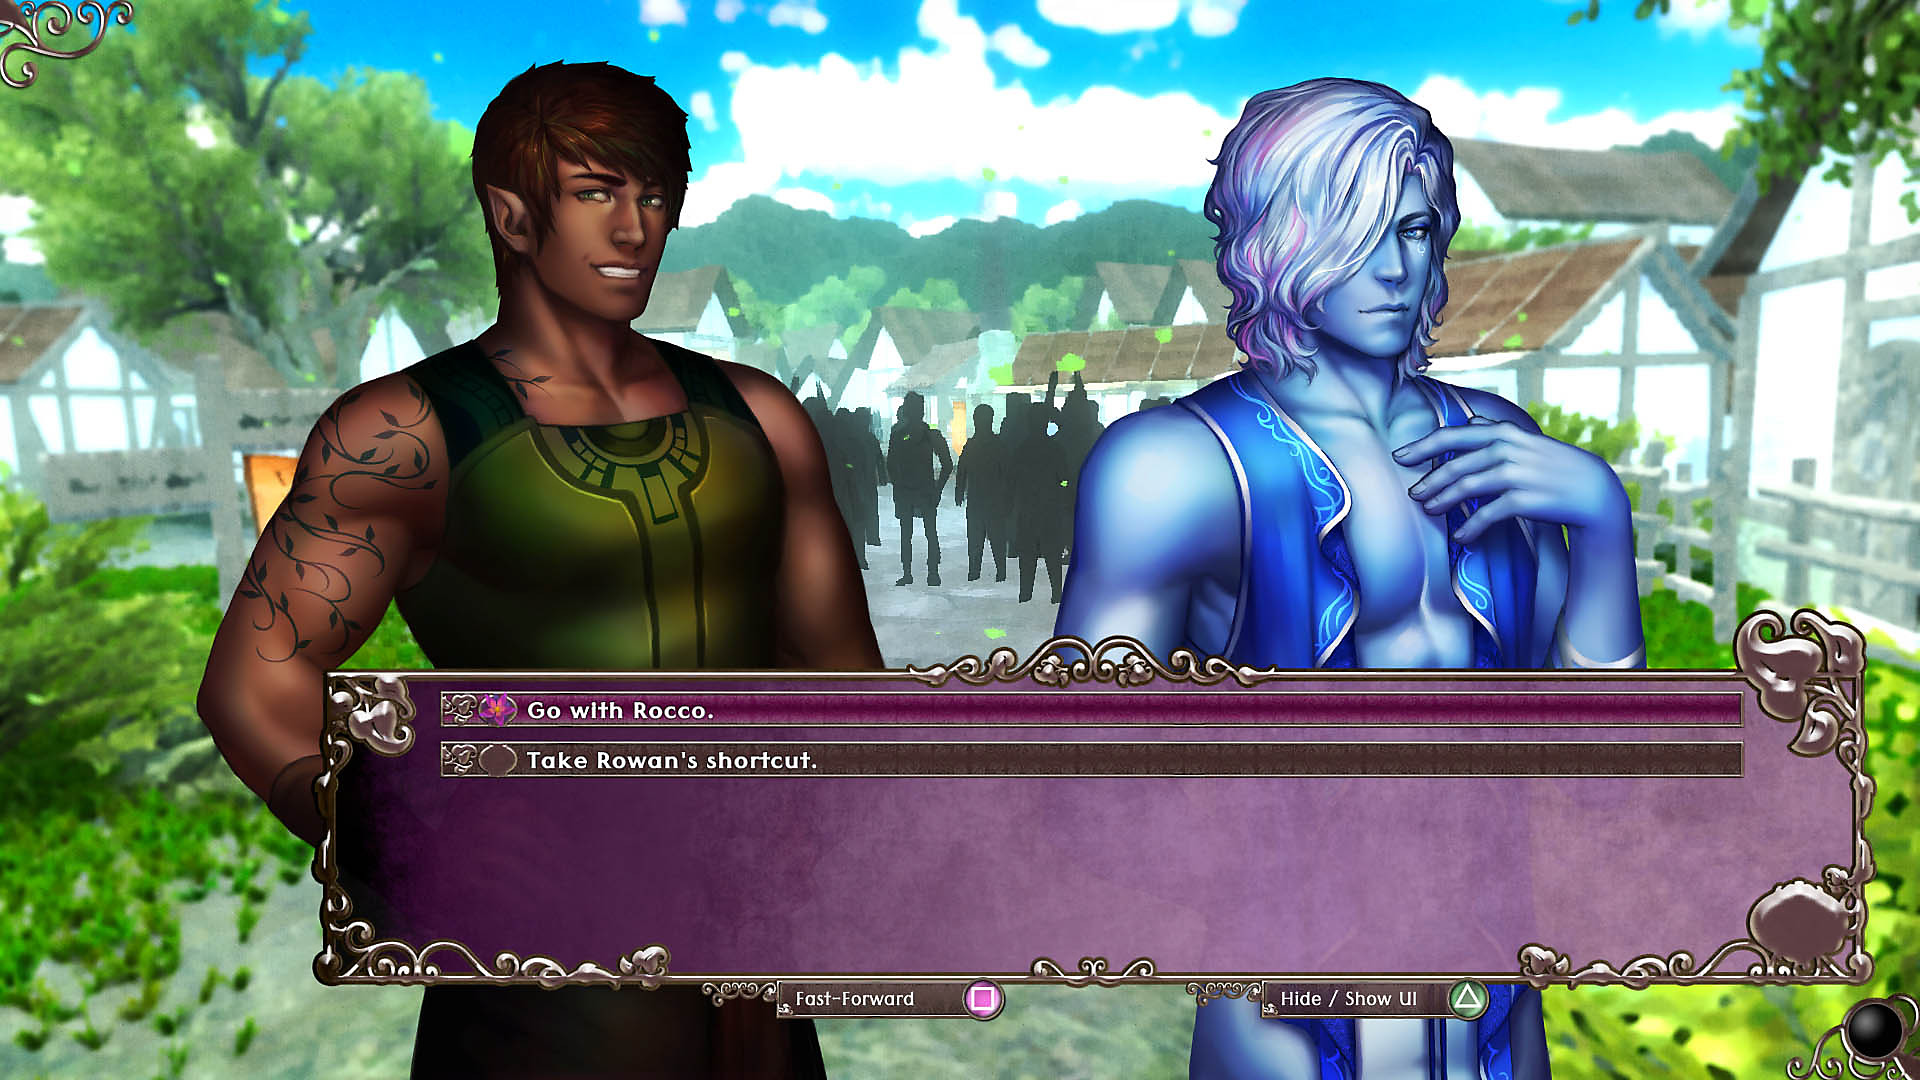 Gameplay dialogue screen